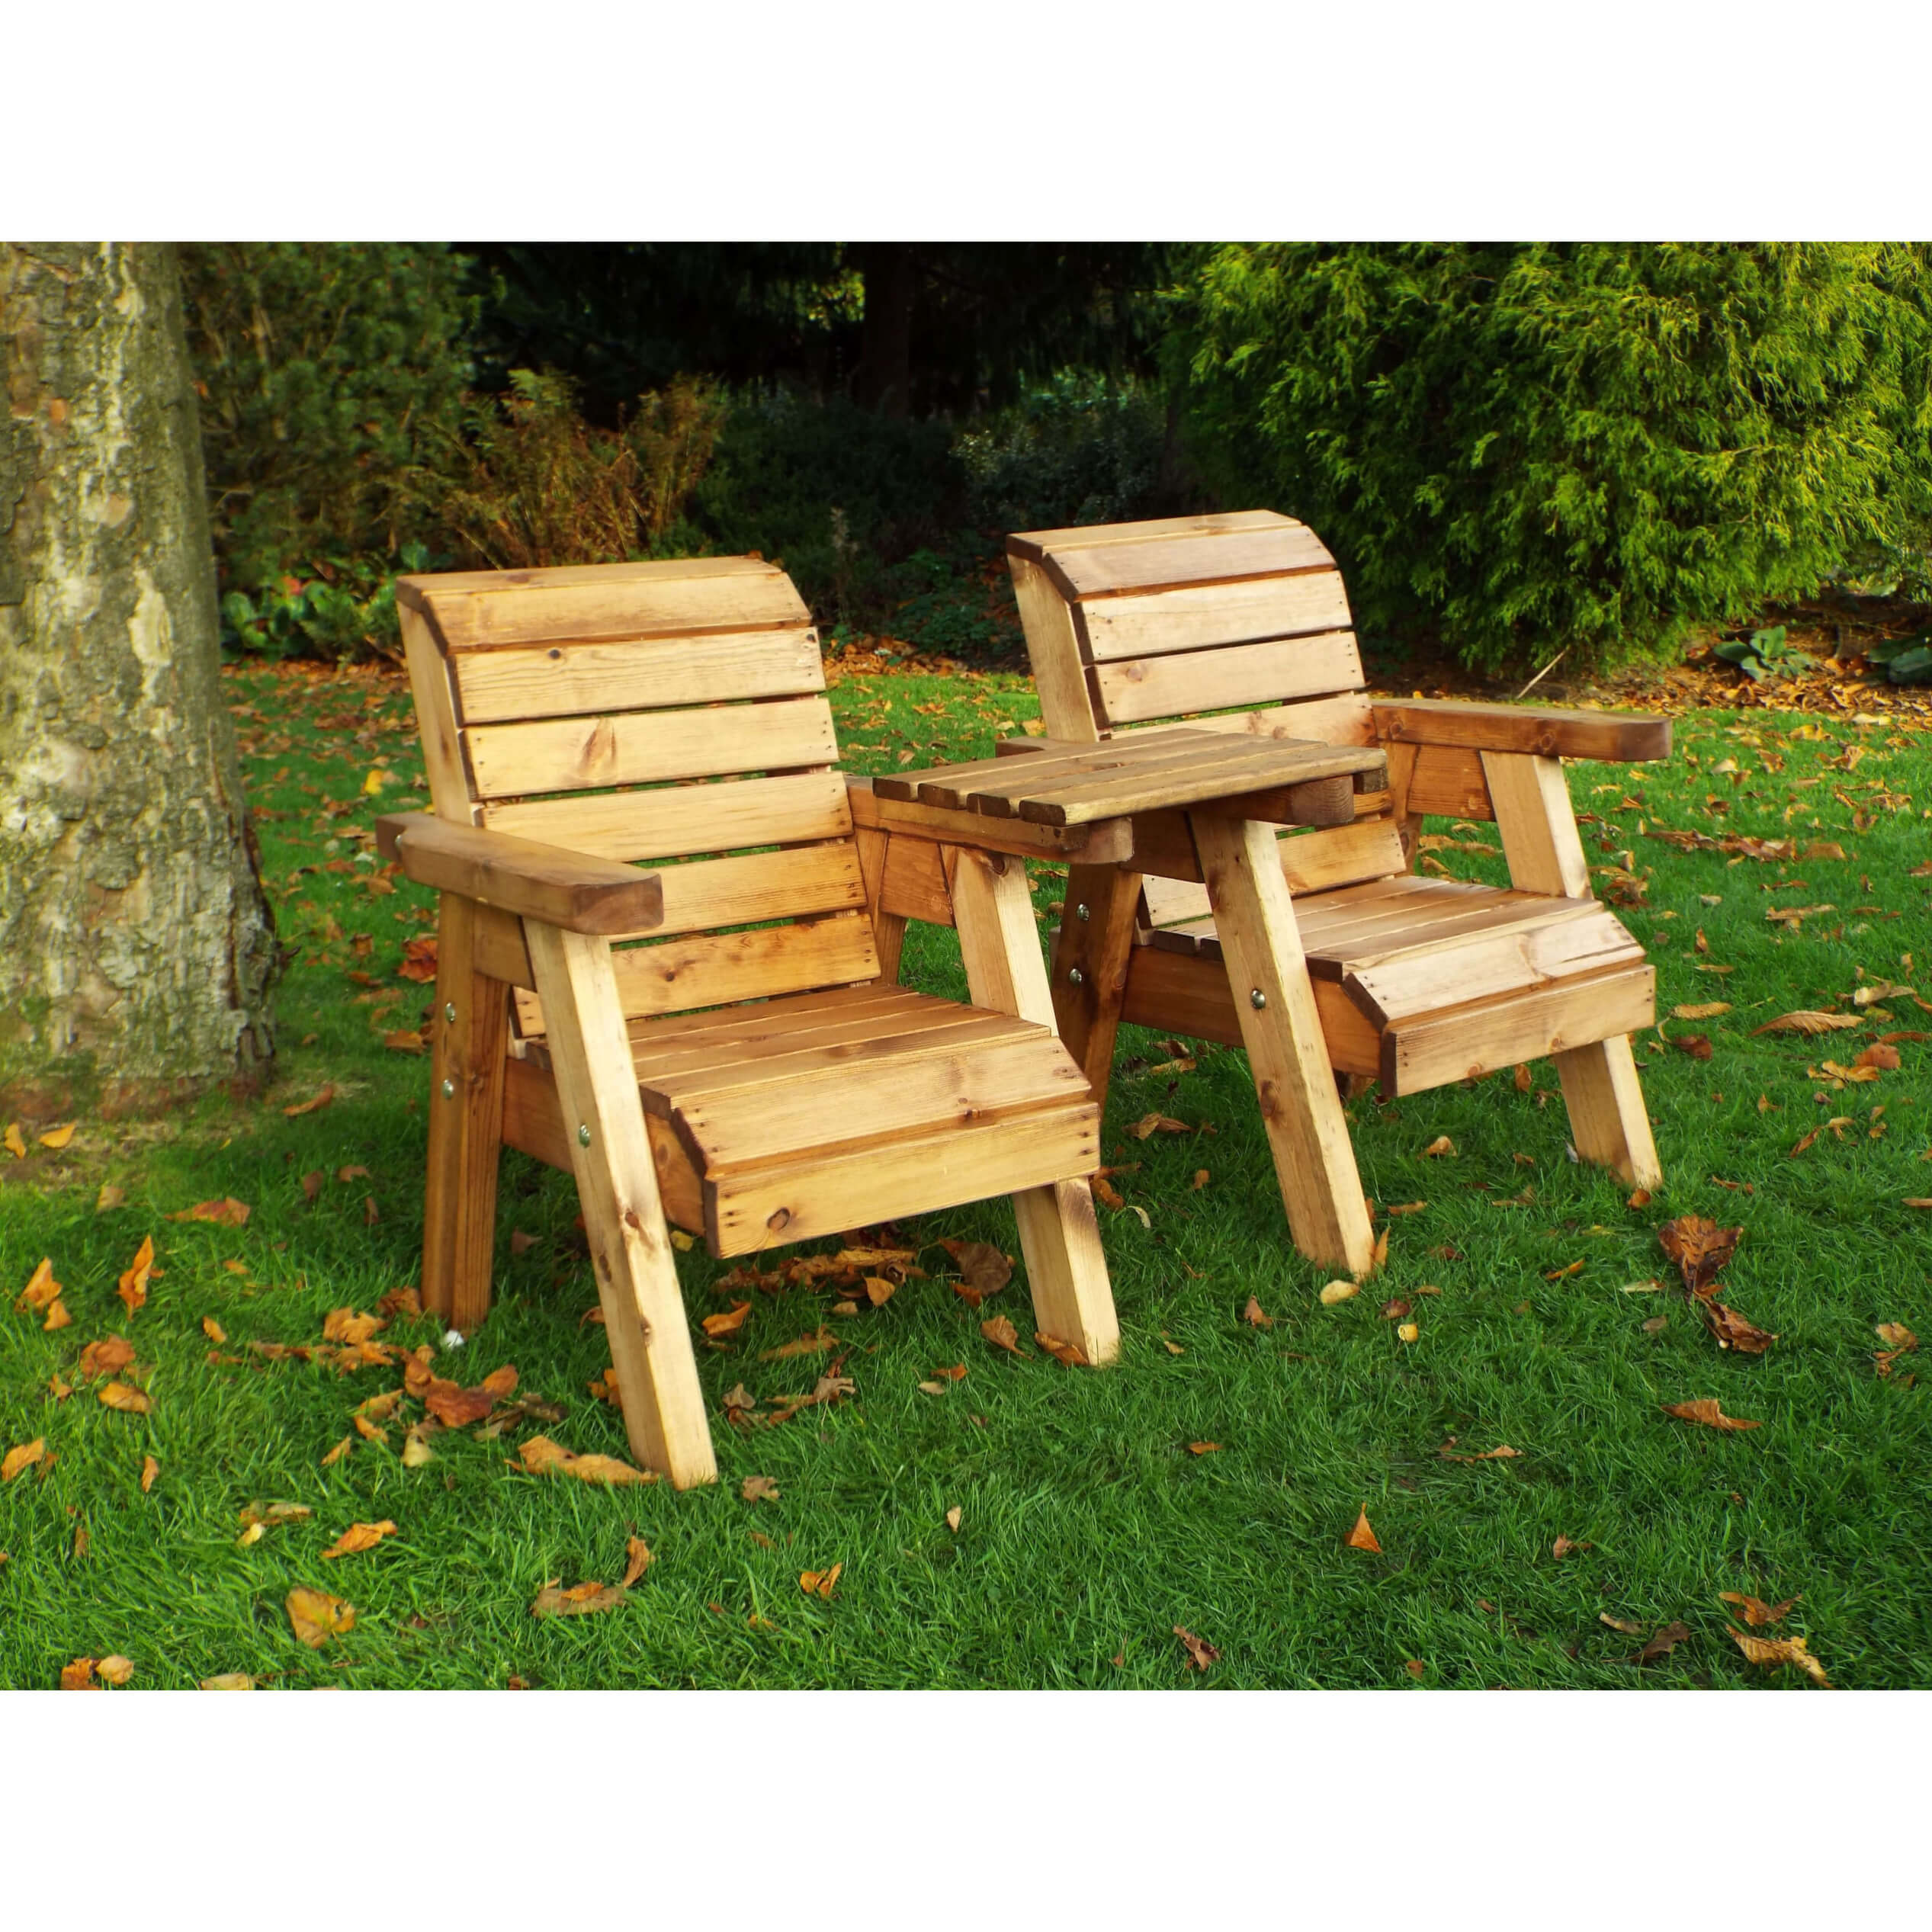 Childrens Outdoor Wooden Companion Seats - Solid Patio ...